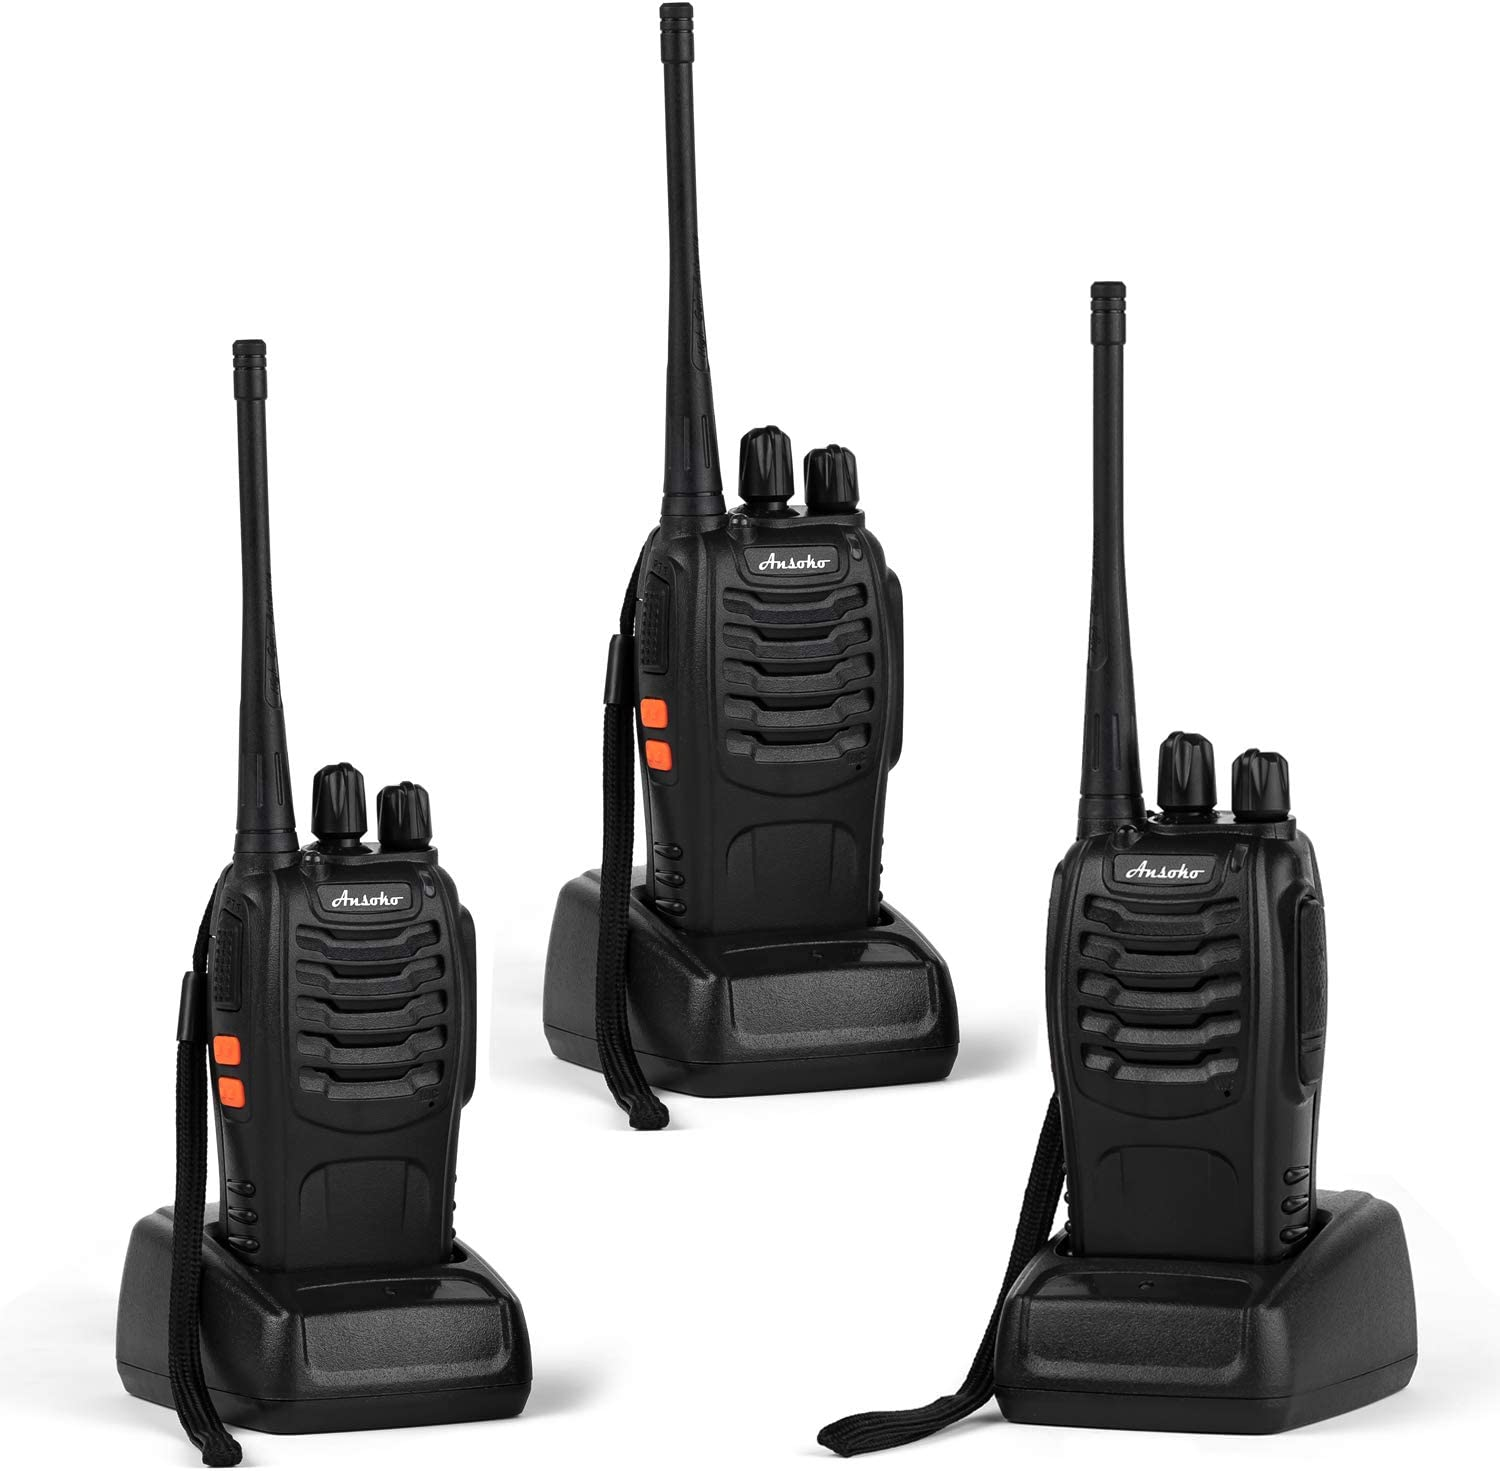 Best long range walkie talkie for cruise